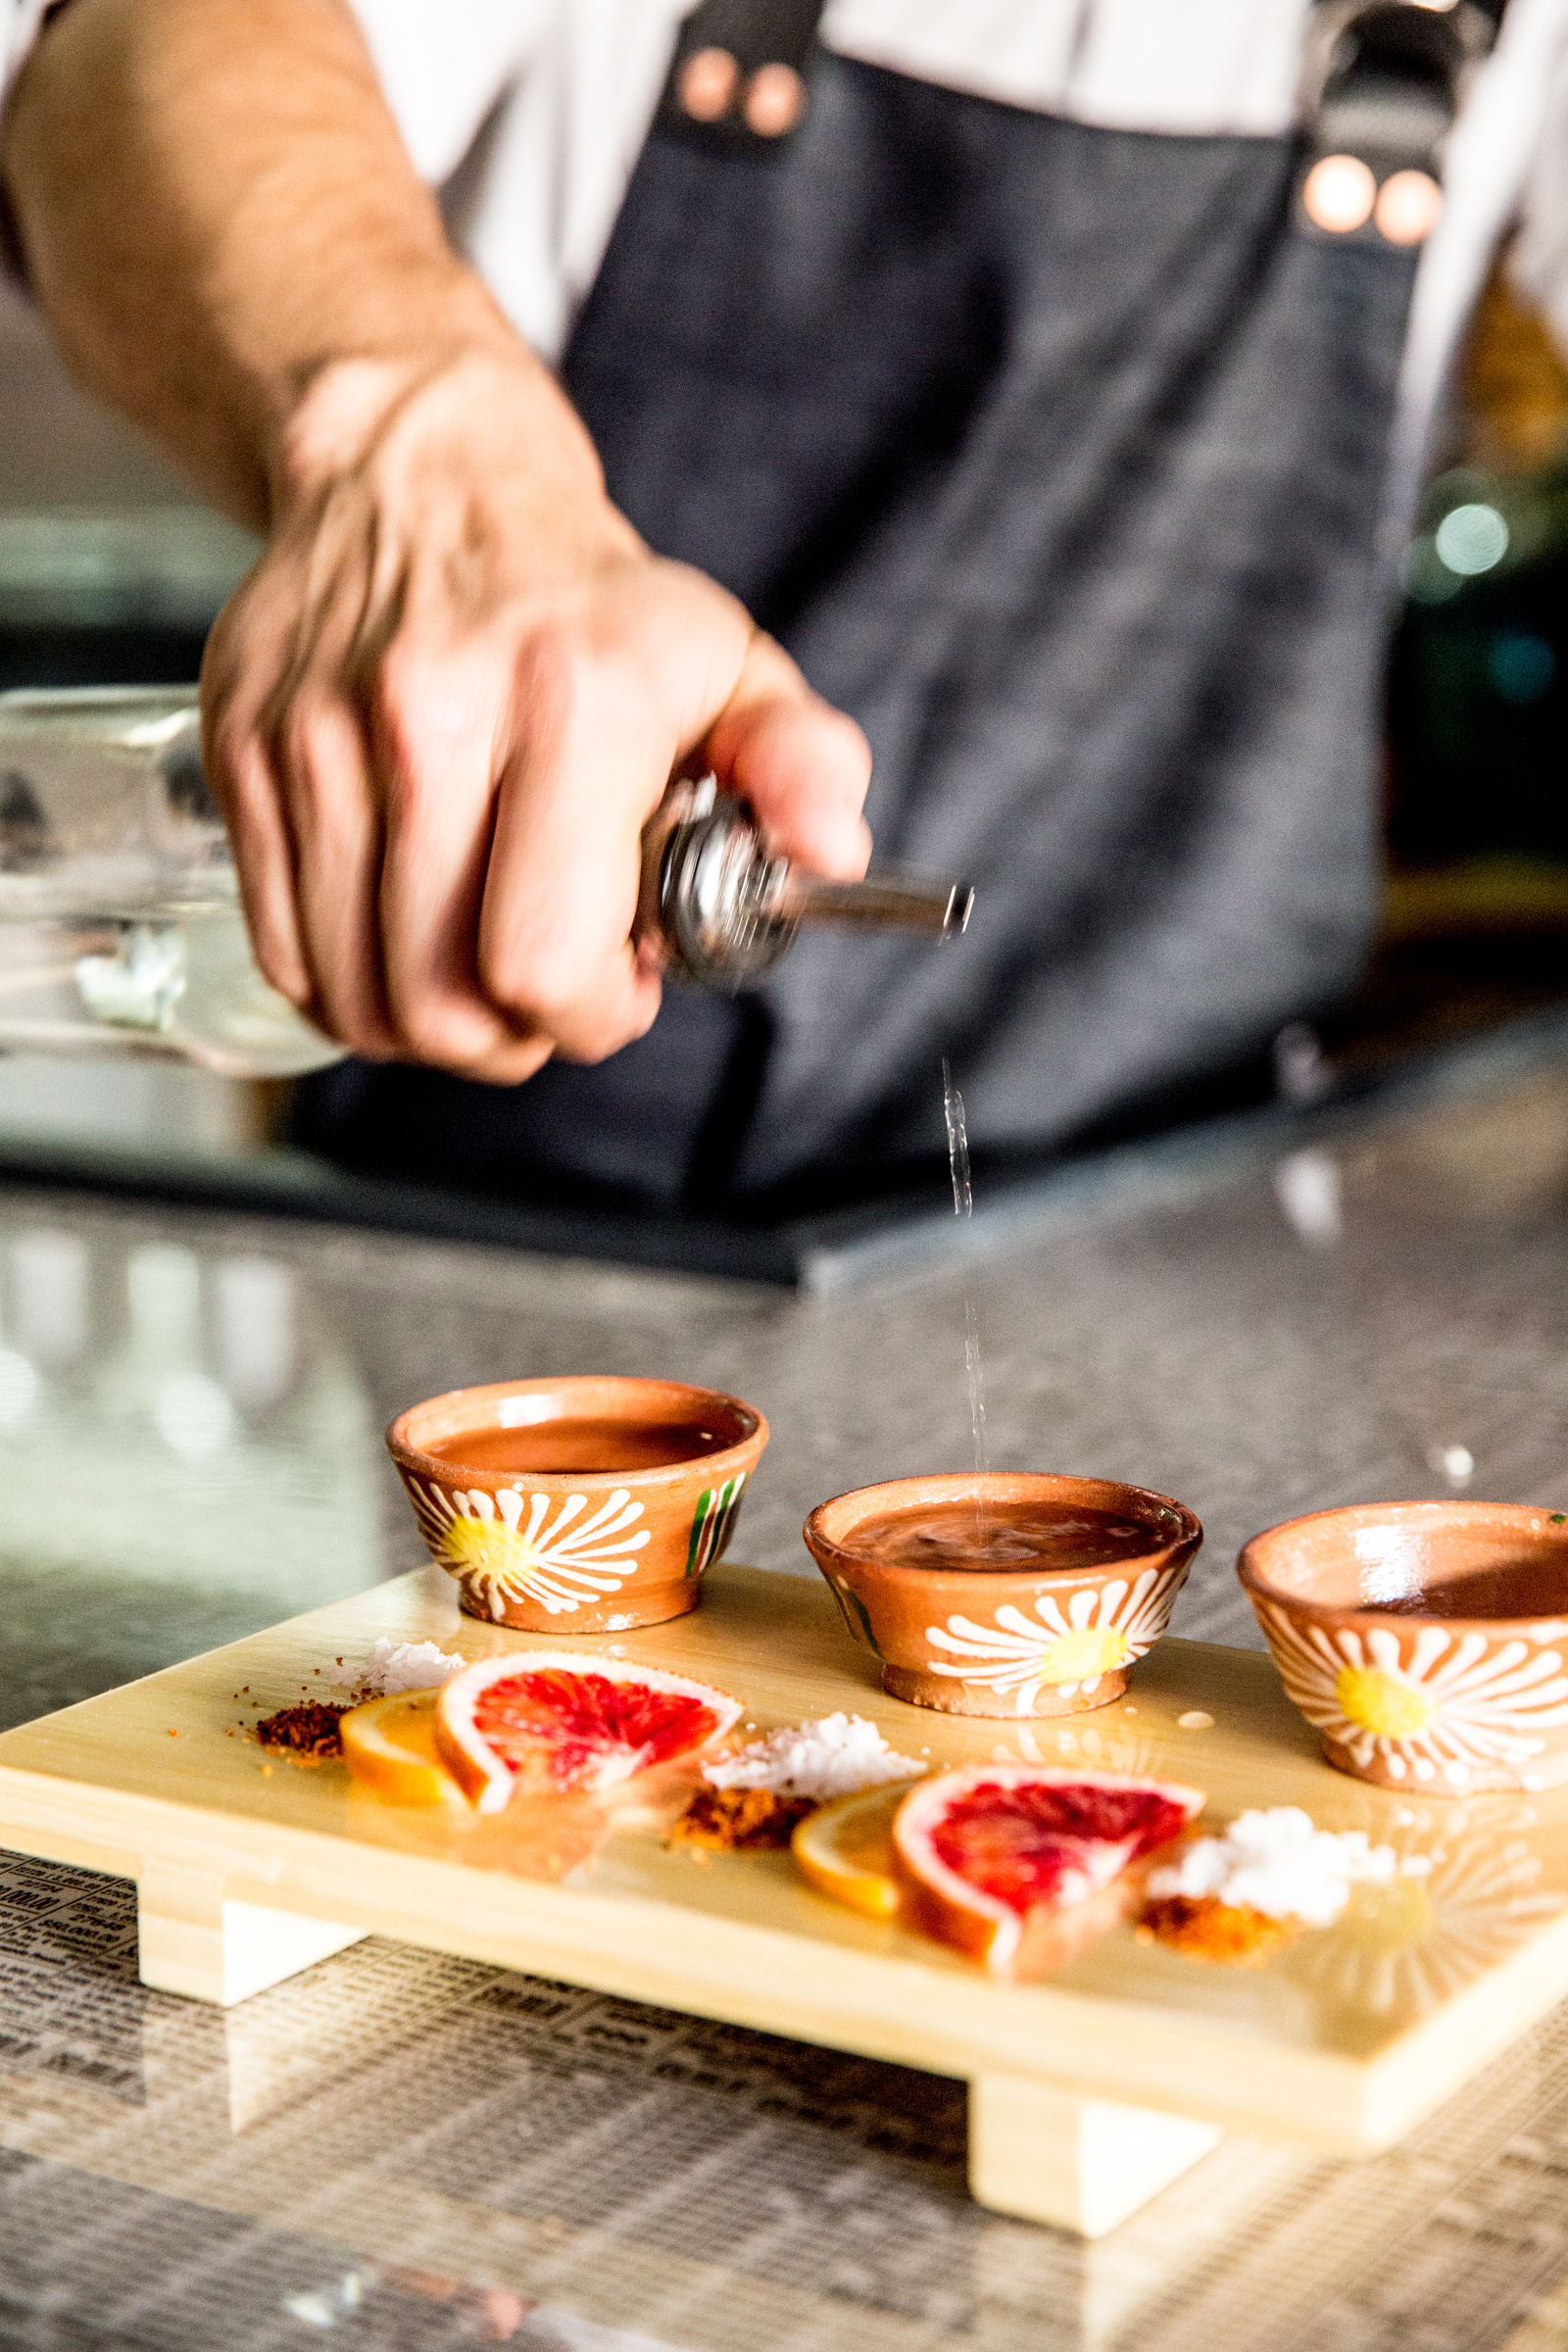 Bartender pouring shots of mezcal in traditional cups with citrus slices, salt, and chili salt